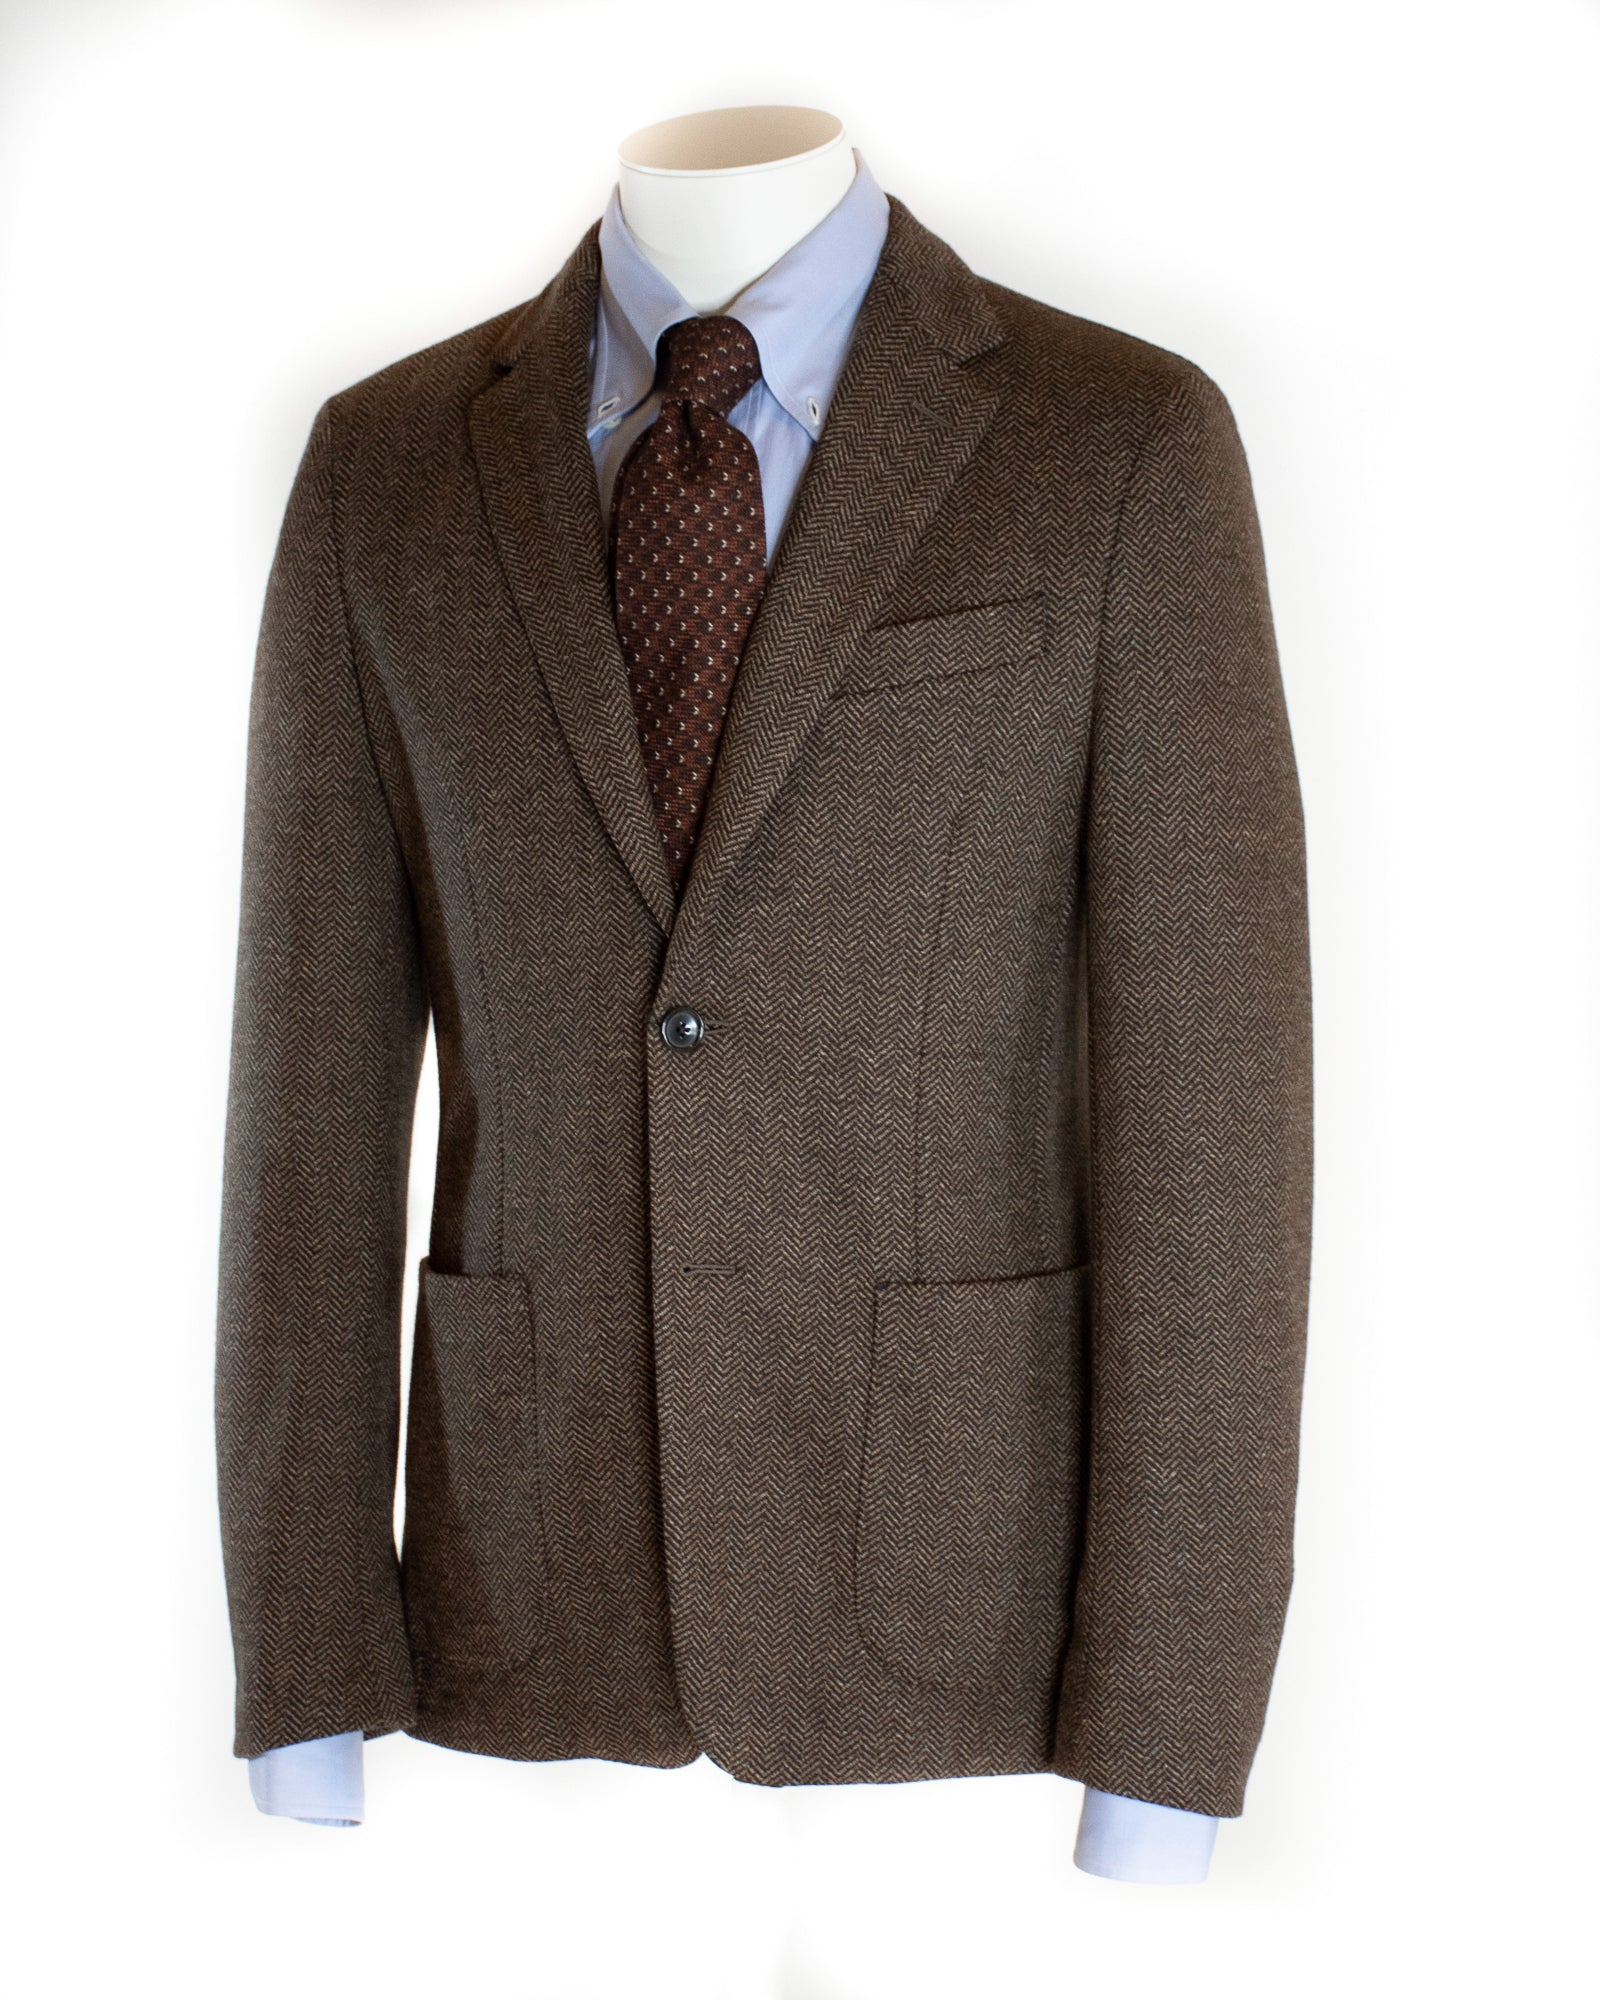 CORNELIANI SINGLE BREASTED SPORTS JACKET